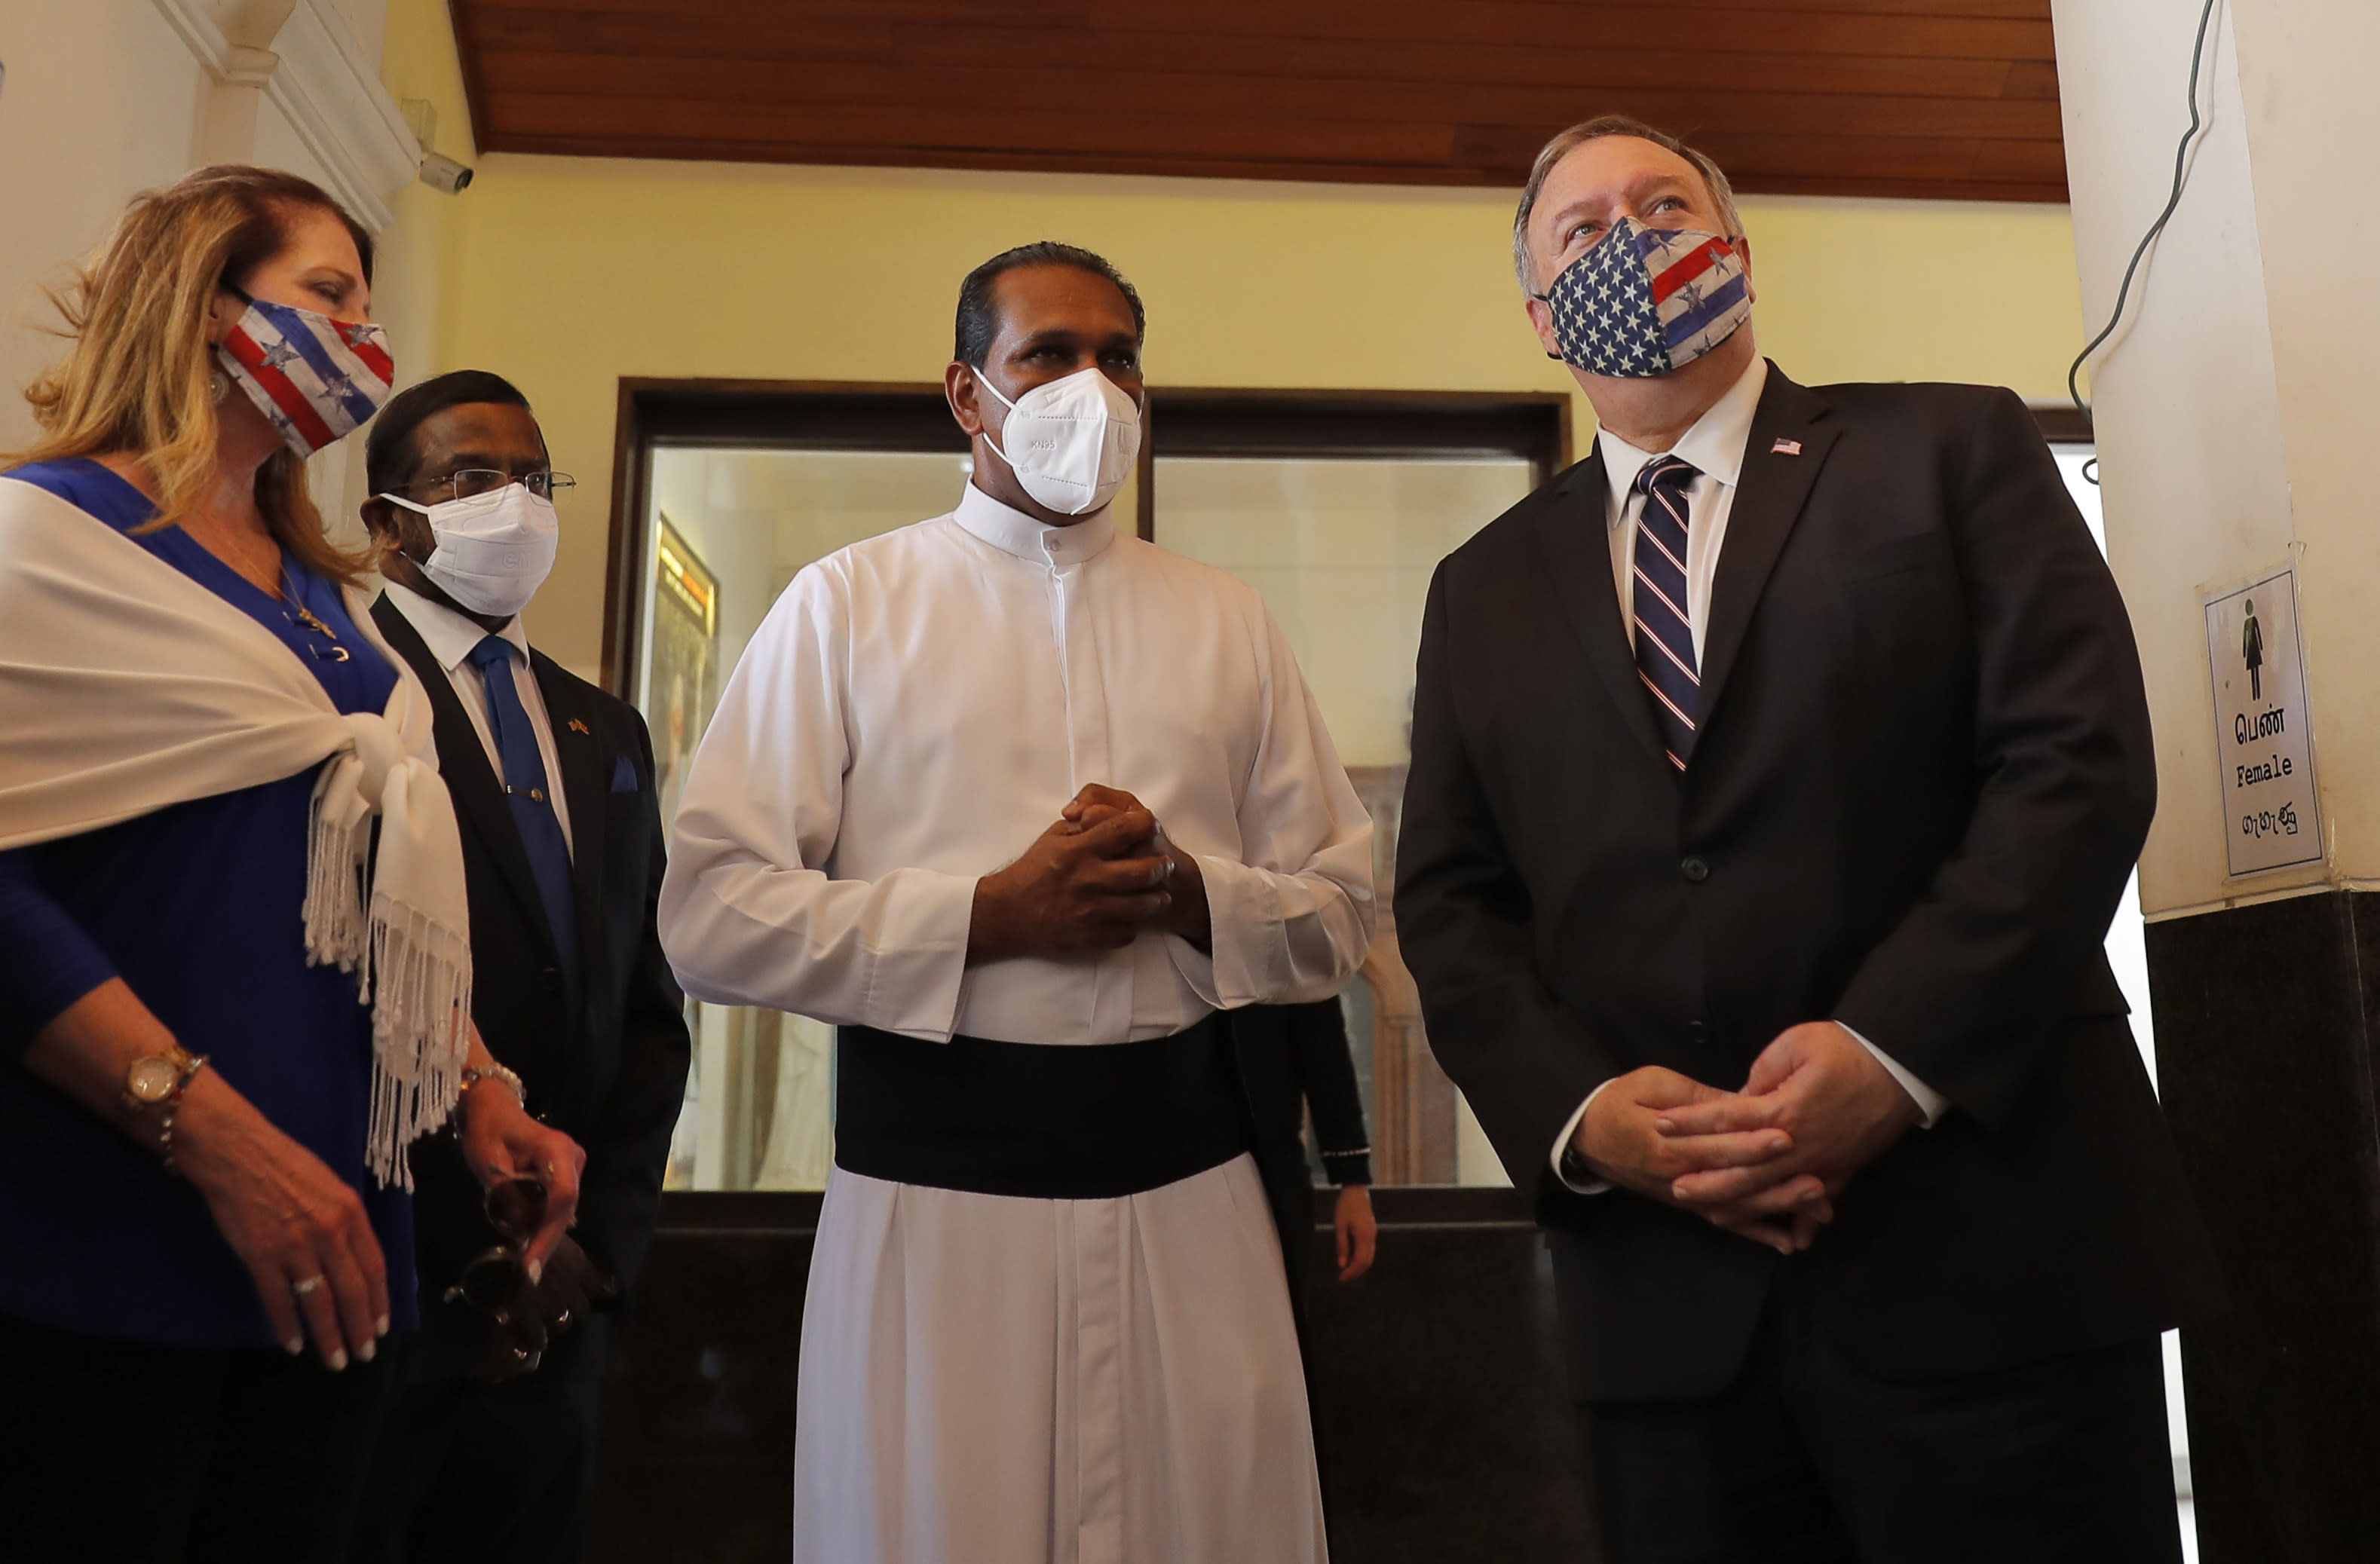 U.S. Secretary of State Mike Pompeo visits St. Anthony's church, one of the sites of the 2019 Easter Sunday attacks, in Colombo, Sri Lanka, Wednesday, Oct. 28, 2020. Pompeo plans to press Sri Lanka to push back against Chinese assertiveness, which U.S. officials complain is highlighted by predatory lending and development projects that benefit China more than the presumed recipients. The Chinese Embassy in Sri Lanka denounced Pompeo's visit to the island even before he arrived there, denouncing a senior U.S. official's warning that the country should be wary of Chinese investment. (AP Photo/Eranga Jayawardena, Pool)